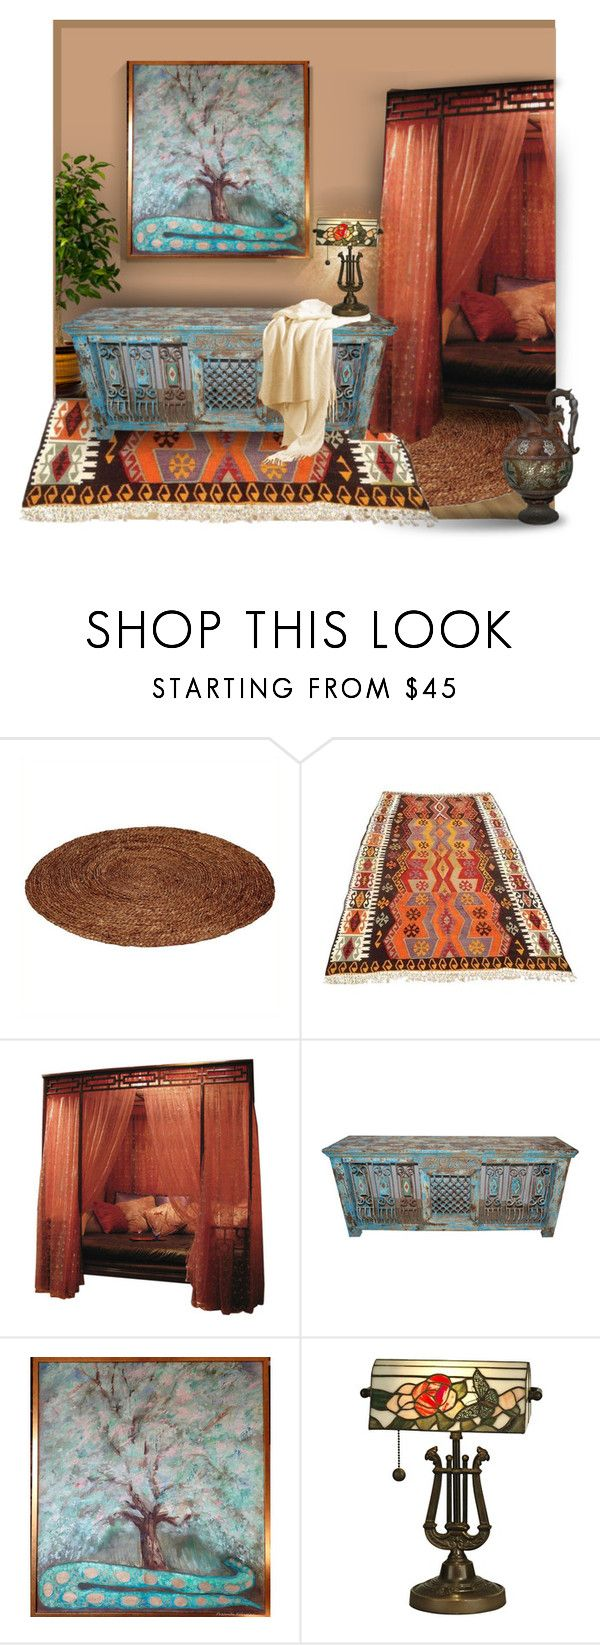 """""""Scent of the Orient"""" by canisartstudio ❤ liked on Polyvore featuring interior, interiors, interior design, home, home decor, interior decorating and Dale Tiffany"""